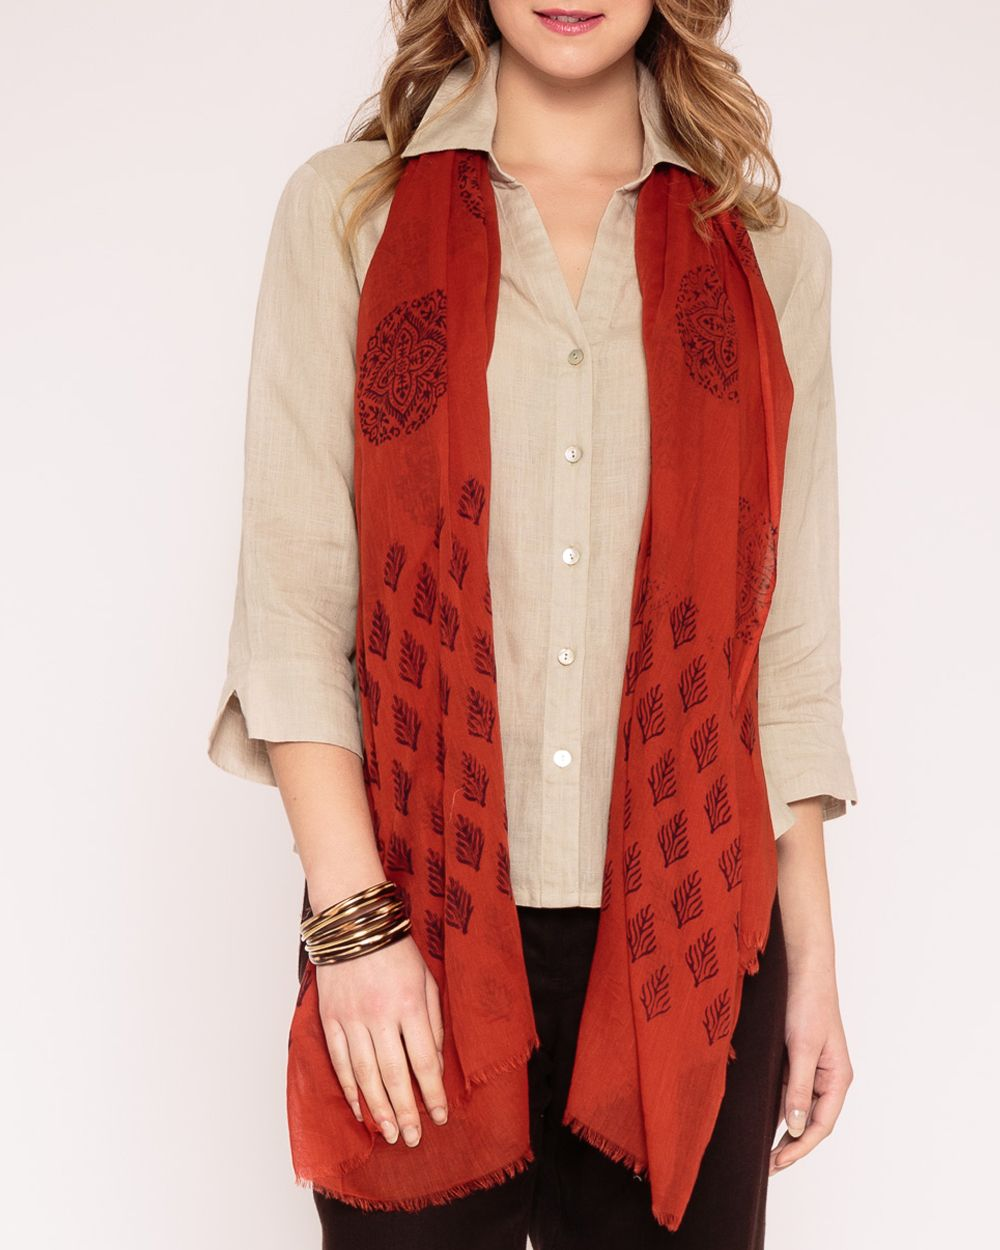 Sheer cotton booti scarf